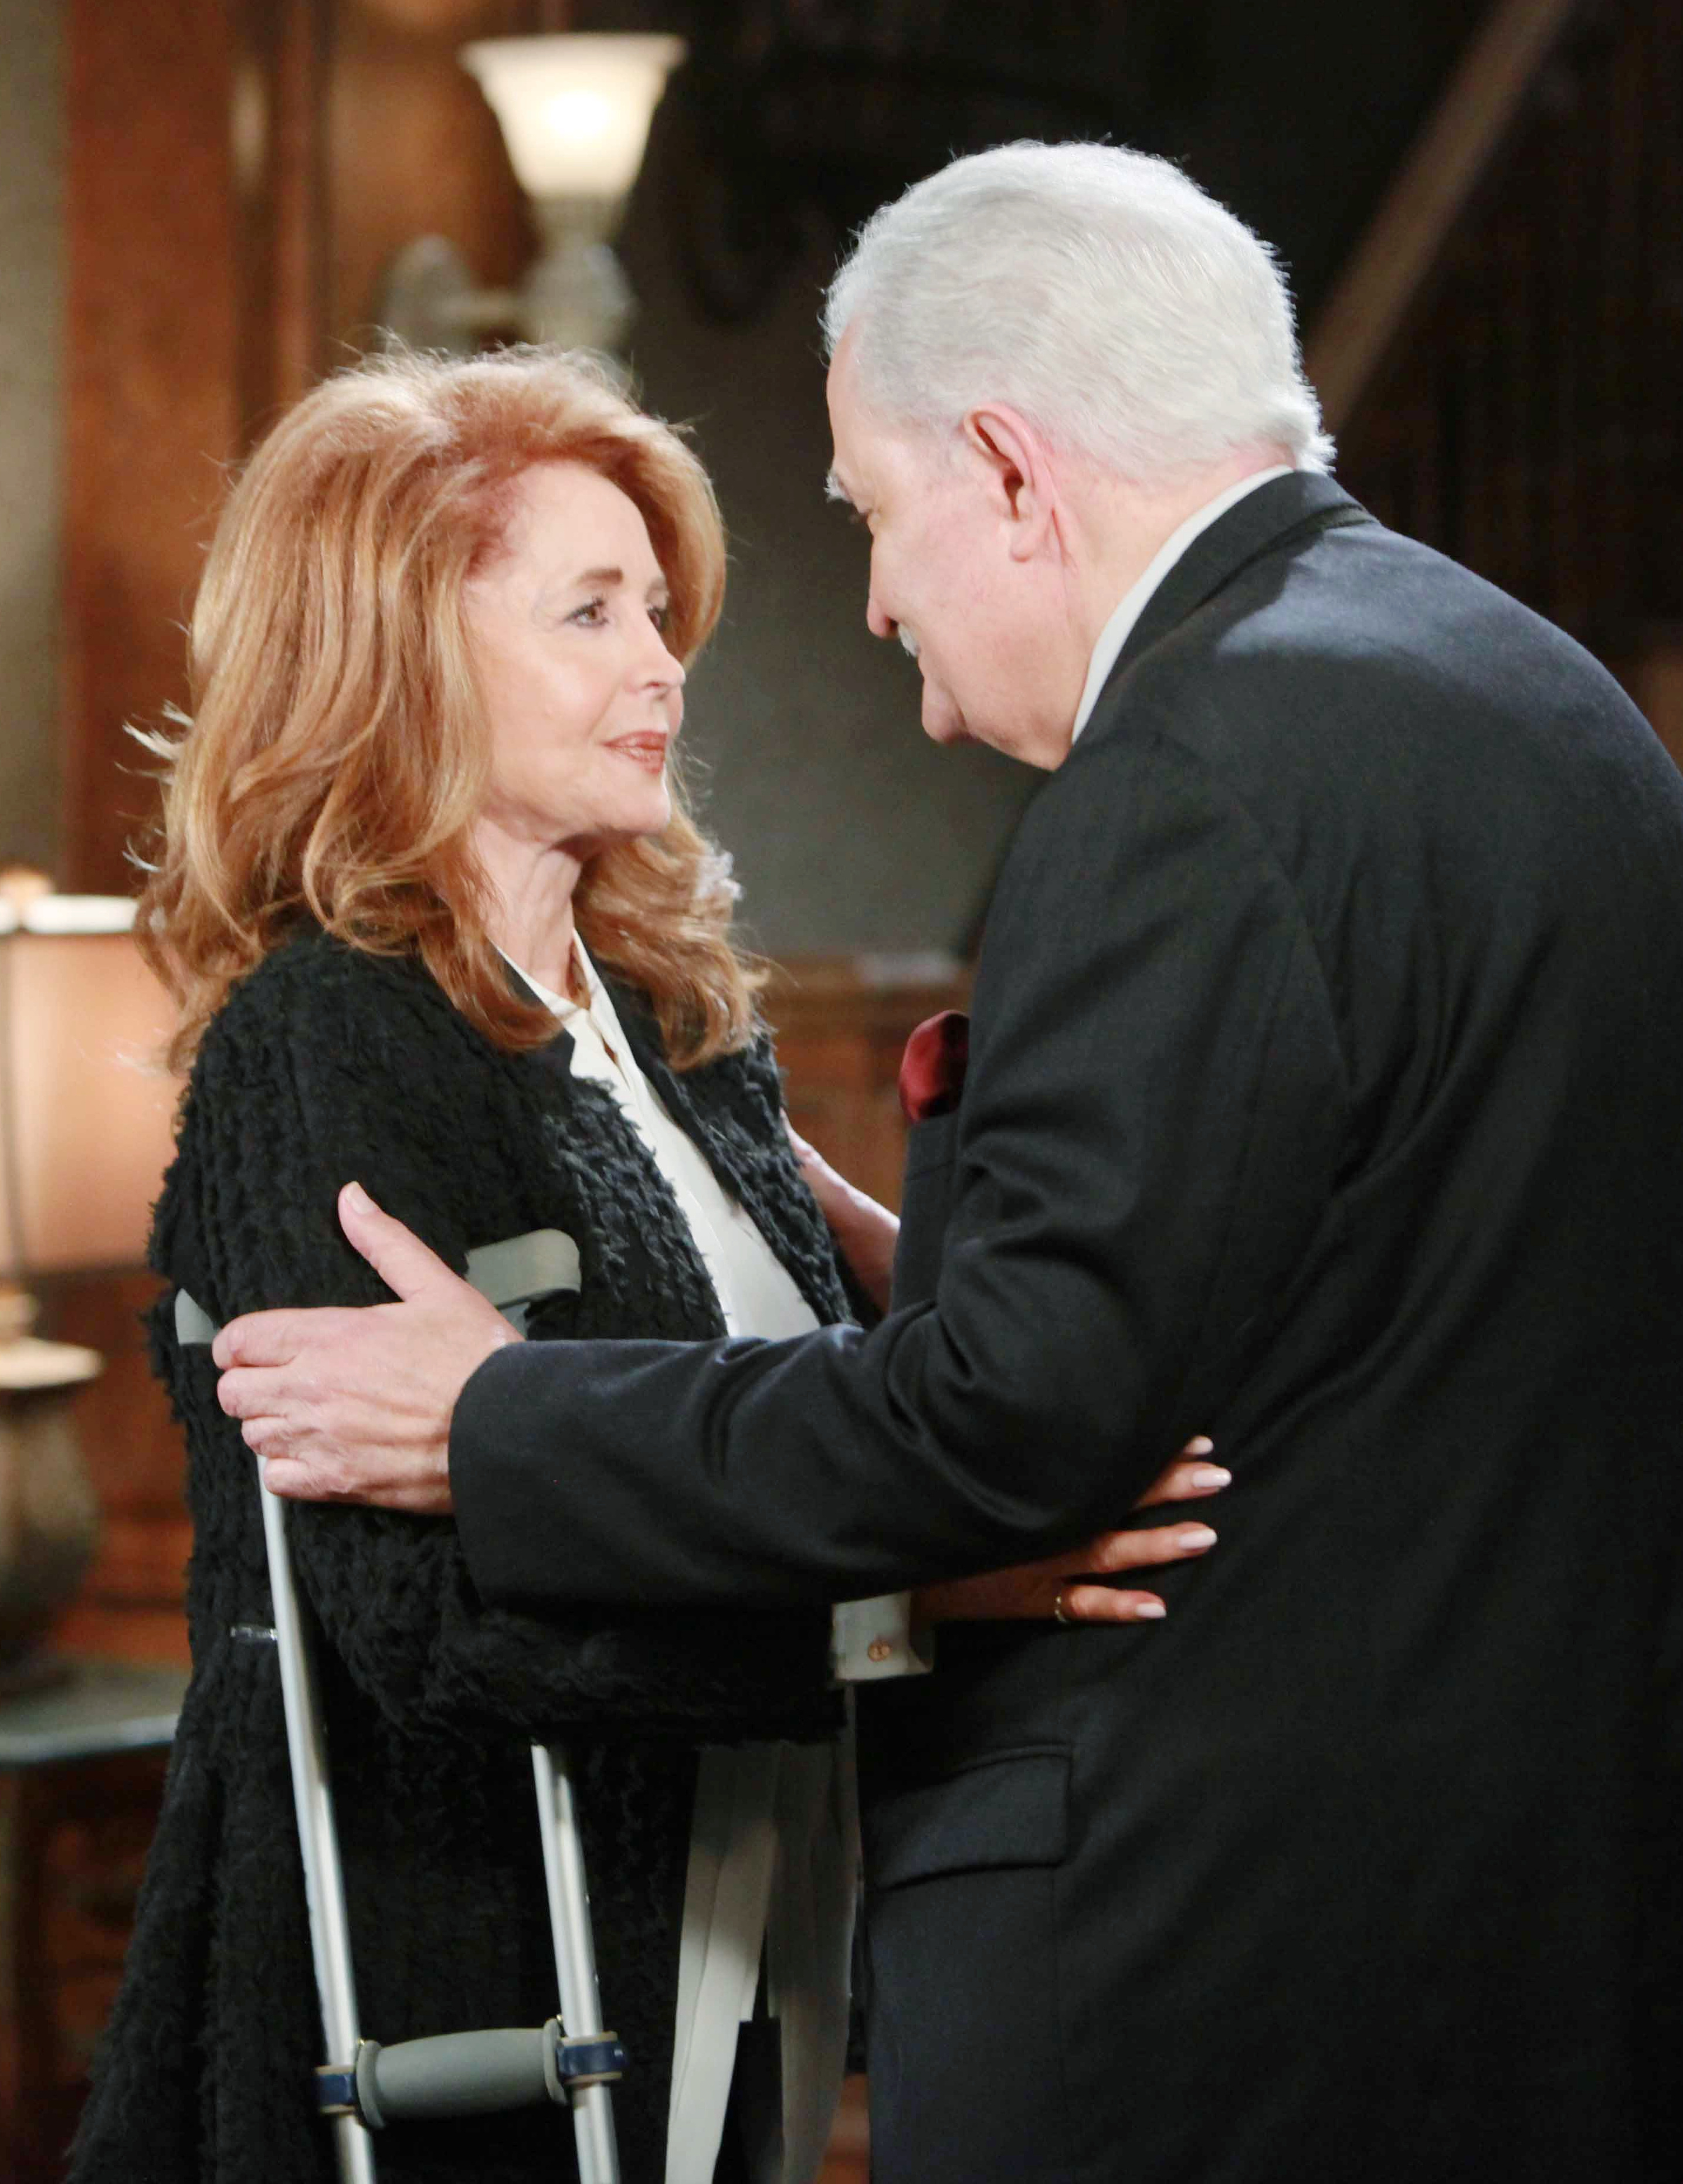 Days Of Our Lives Spoilers:  •Maggie and Justin interrupt Bonnie and Victor's wedding.